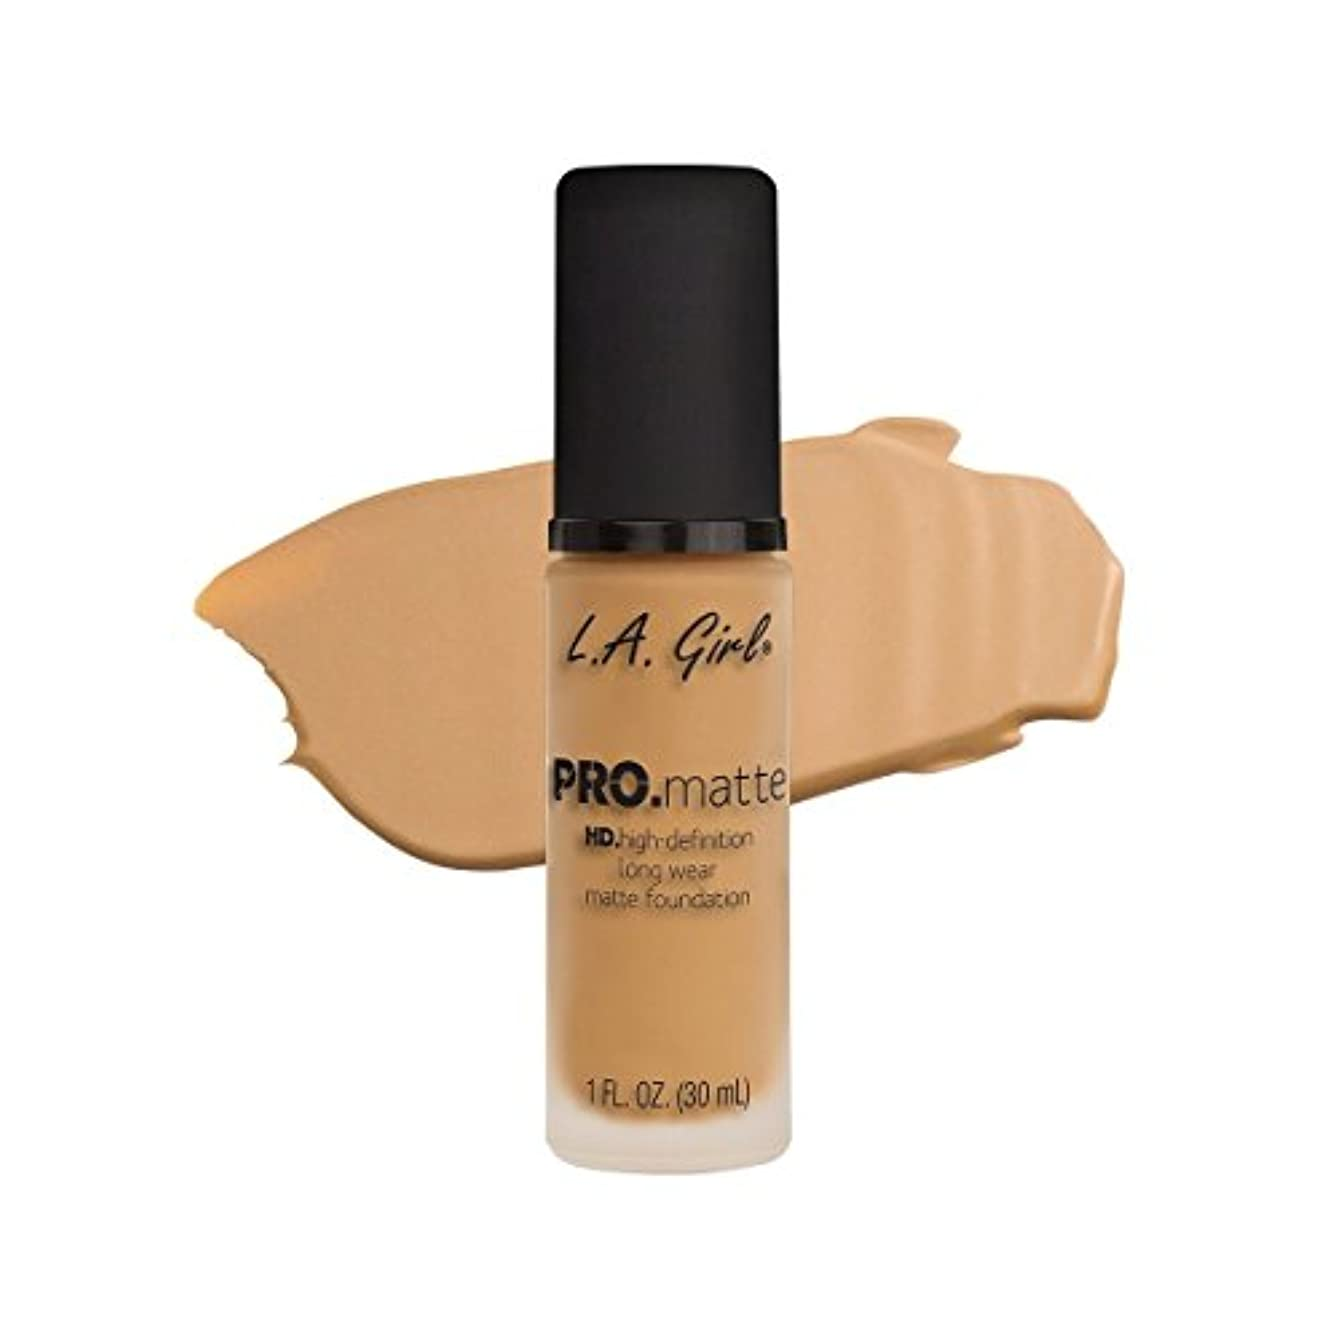 バーガー漂流圧倒的(3 Pack) L.A. GIRL Pro Matte Foundation - Natural (並行輸入品)